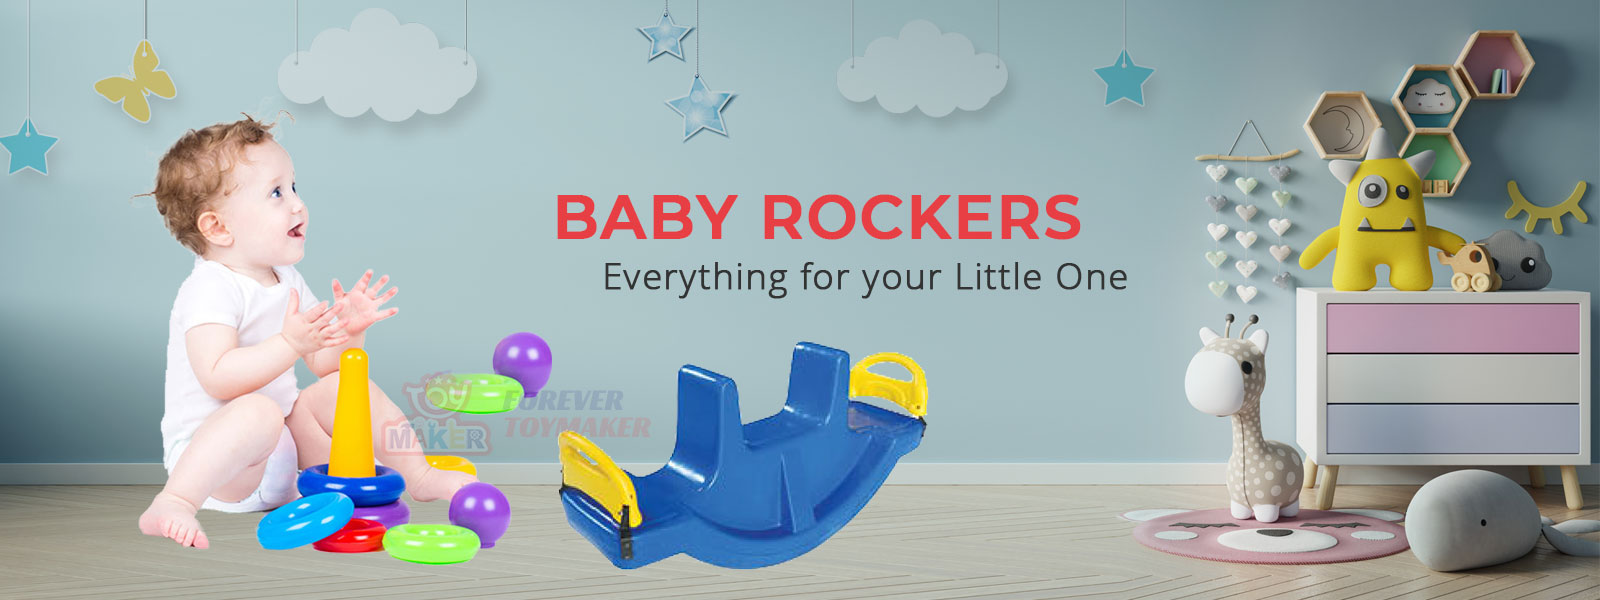 Baby Rockers Manufacturers in Noida